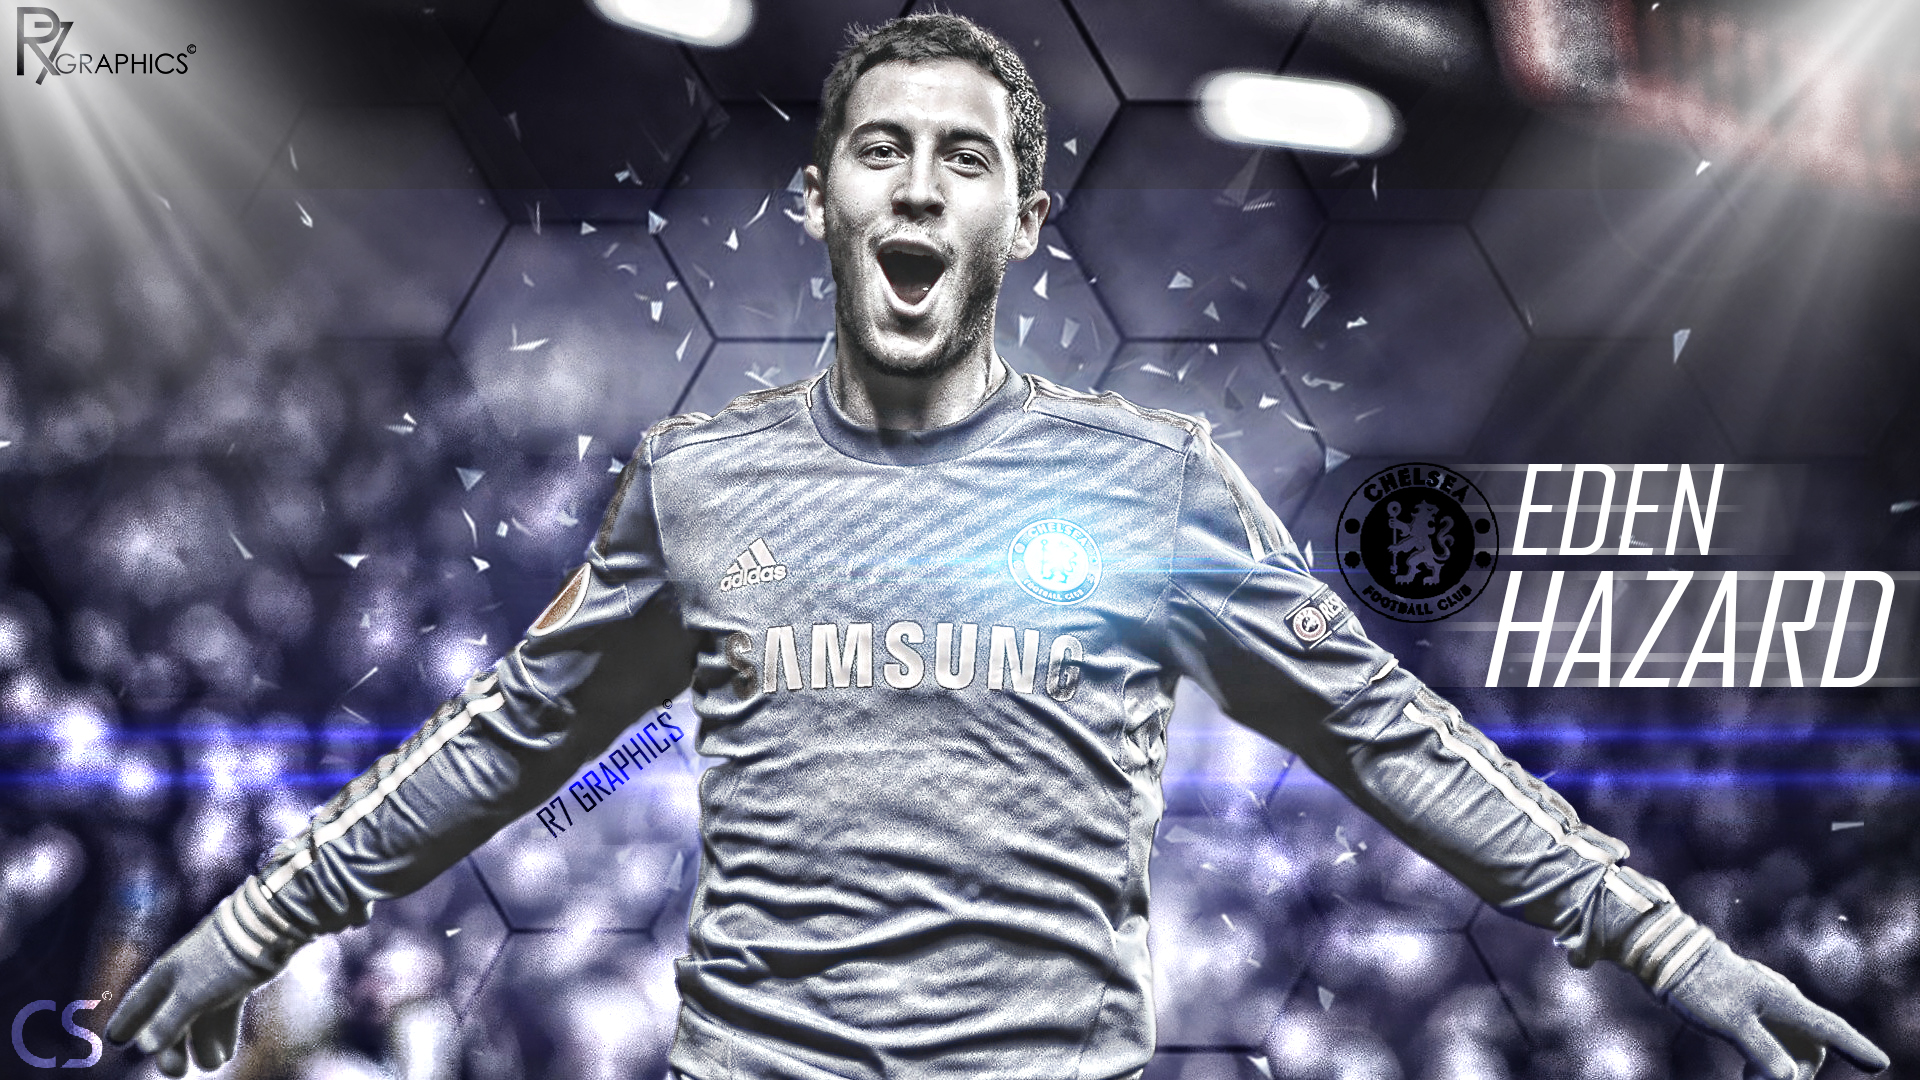 Free Download Eden Hazard Wallpaper 1920x1080 For Your